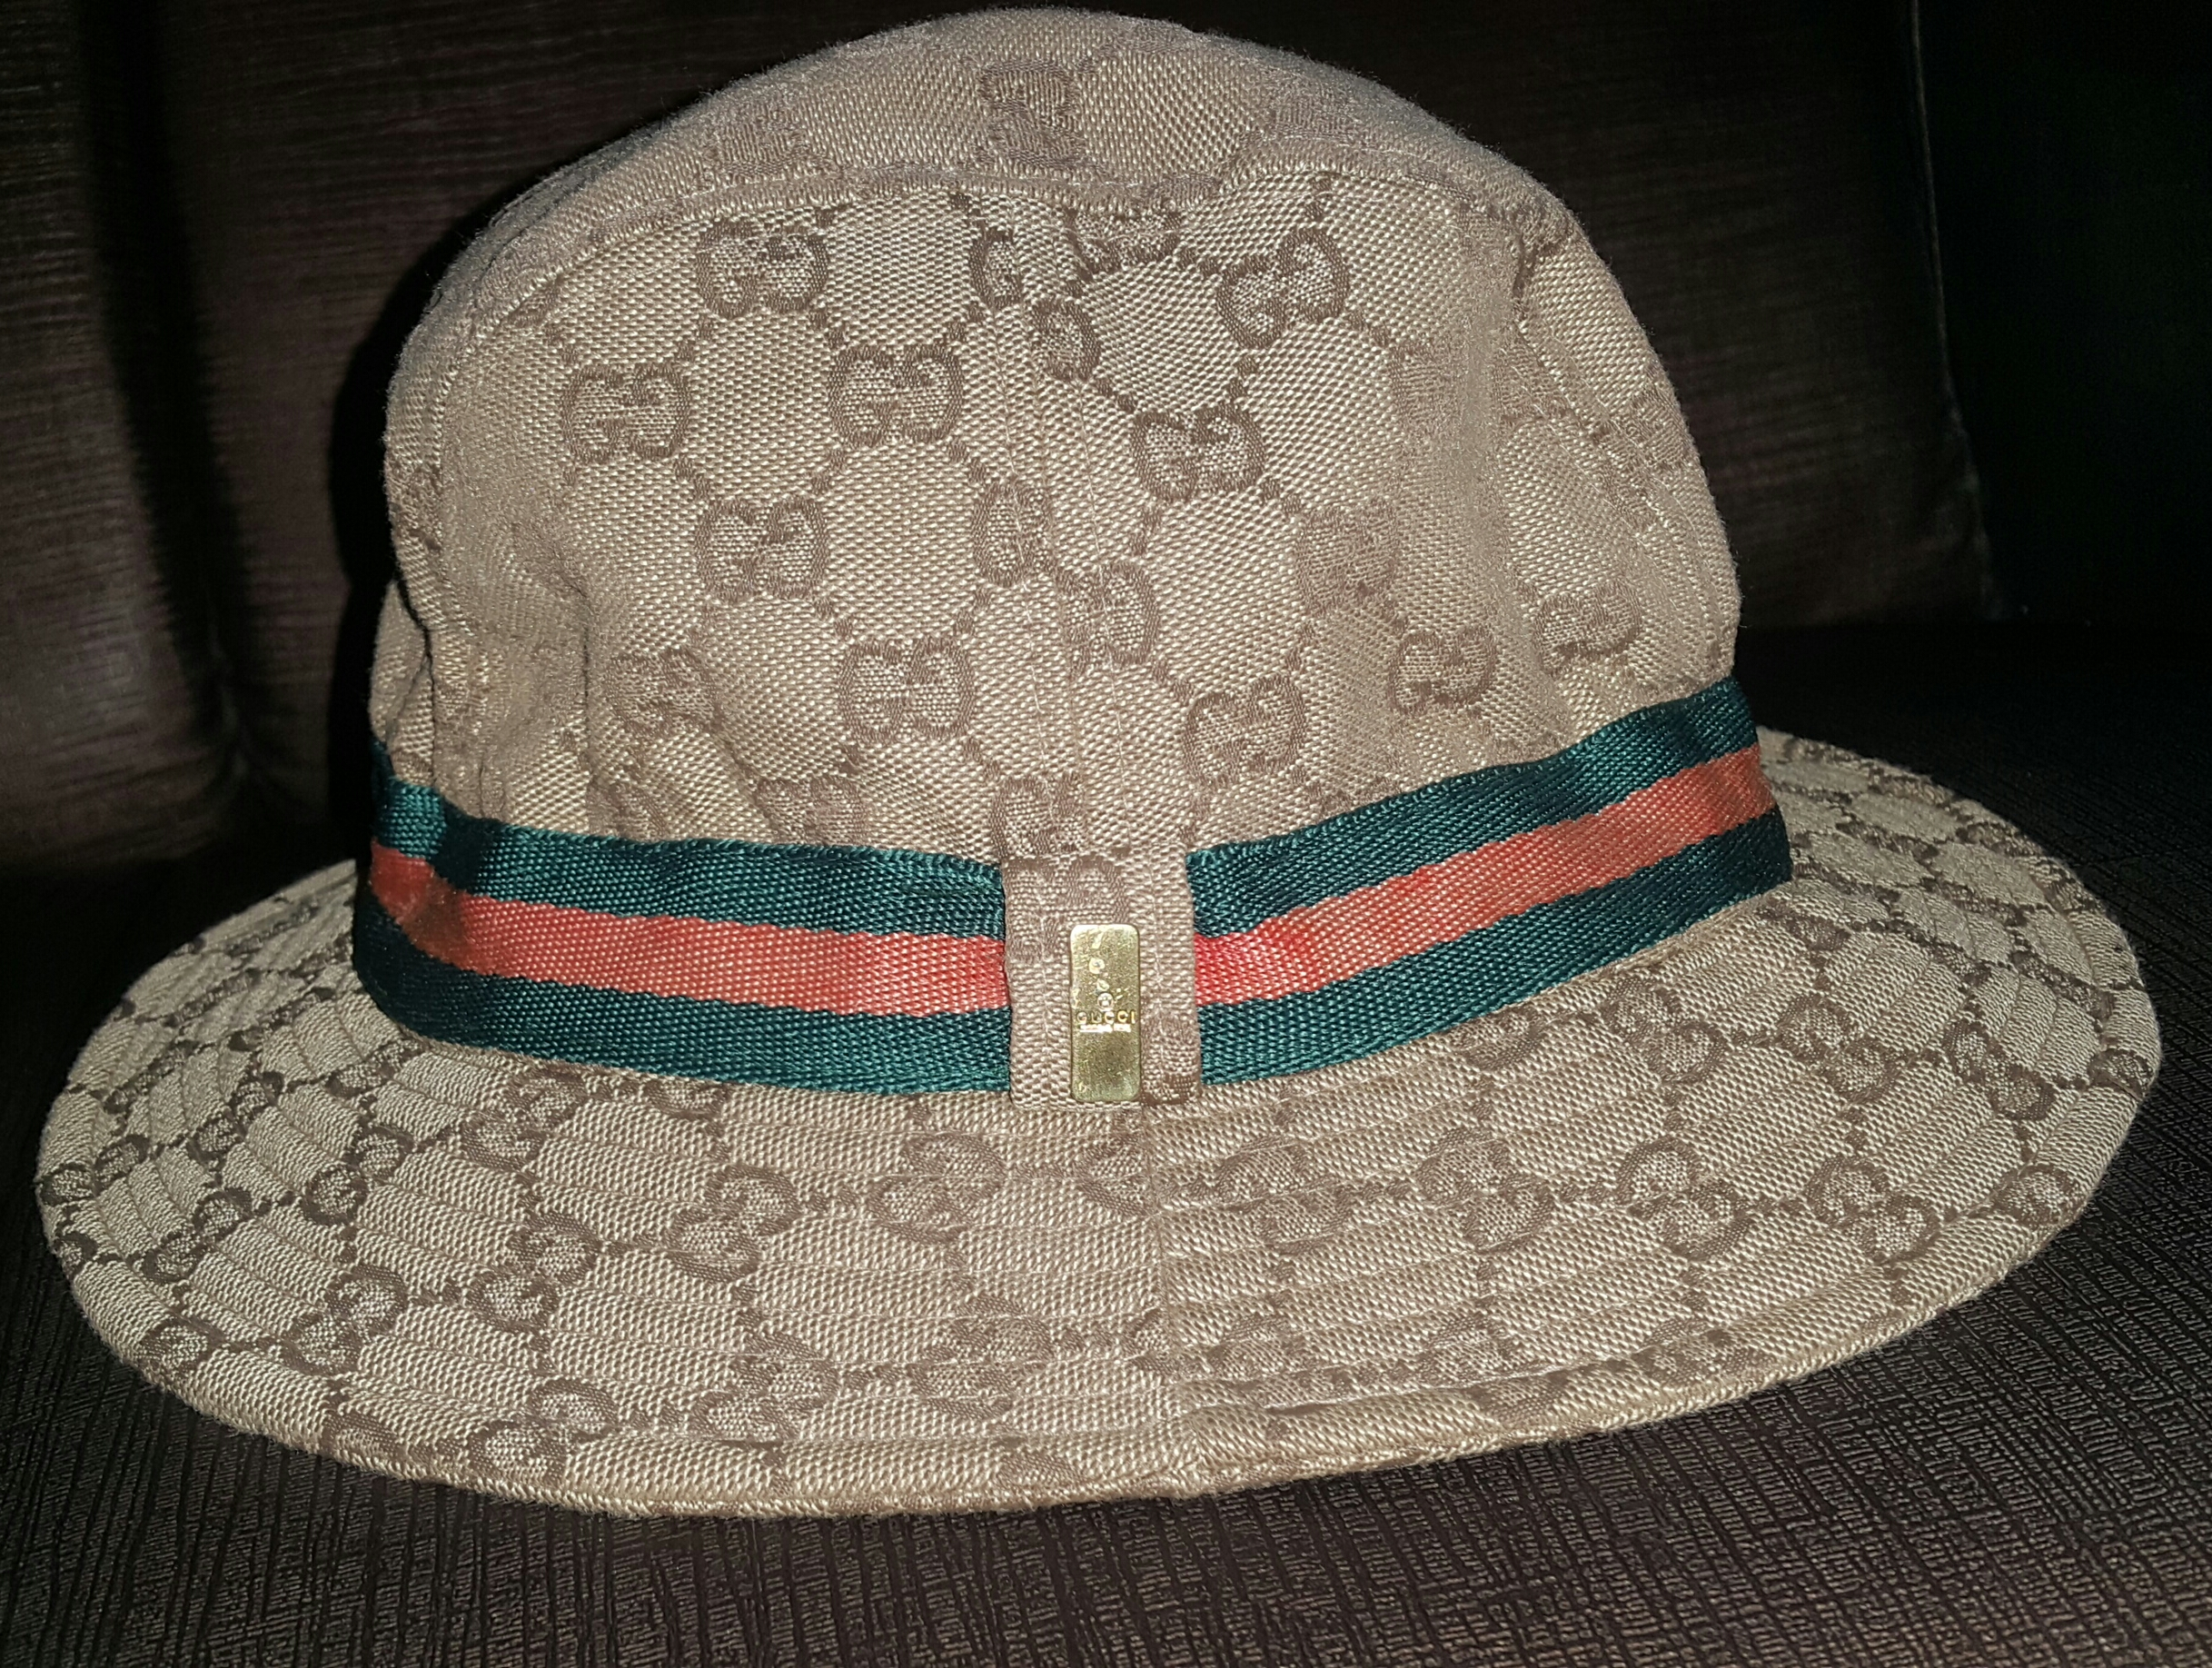 0aef683e50a Gucci Authentic Vintage GUCCI Beige GG Monogram Logo Bucket Hat Size one  size - Hats for Sale - Grailed